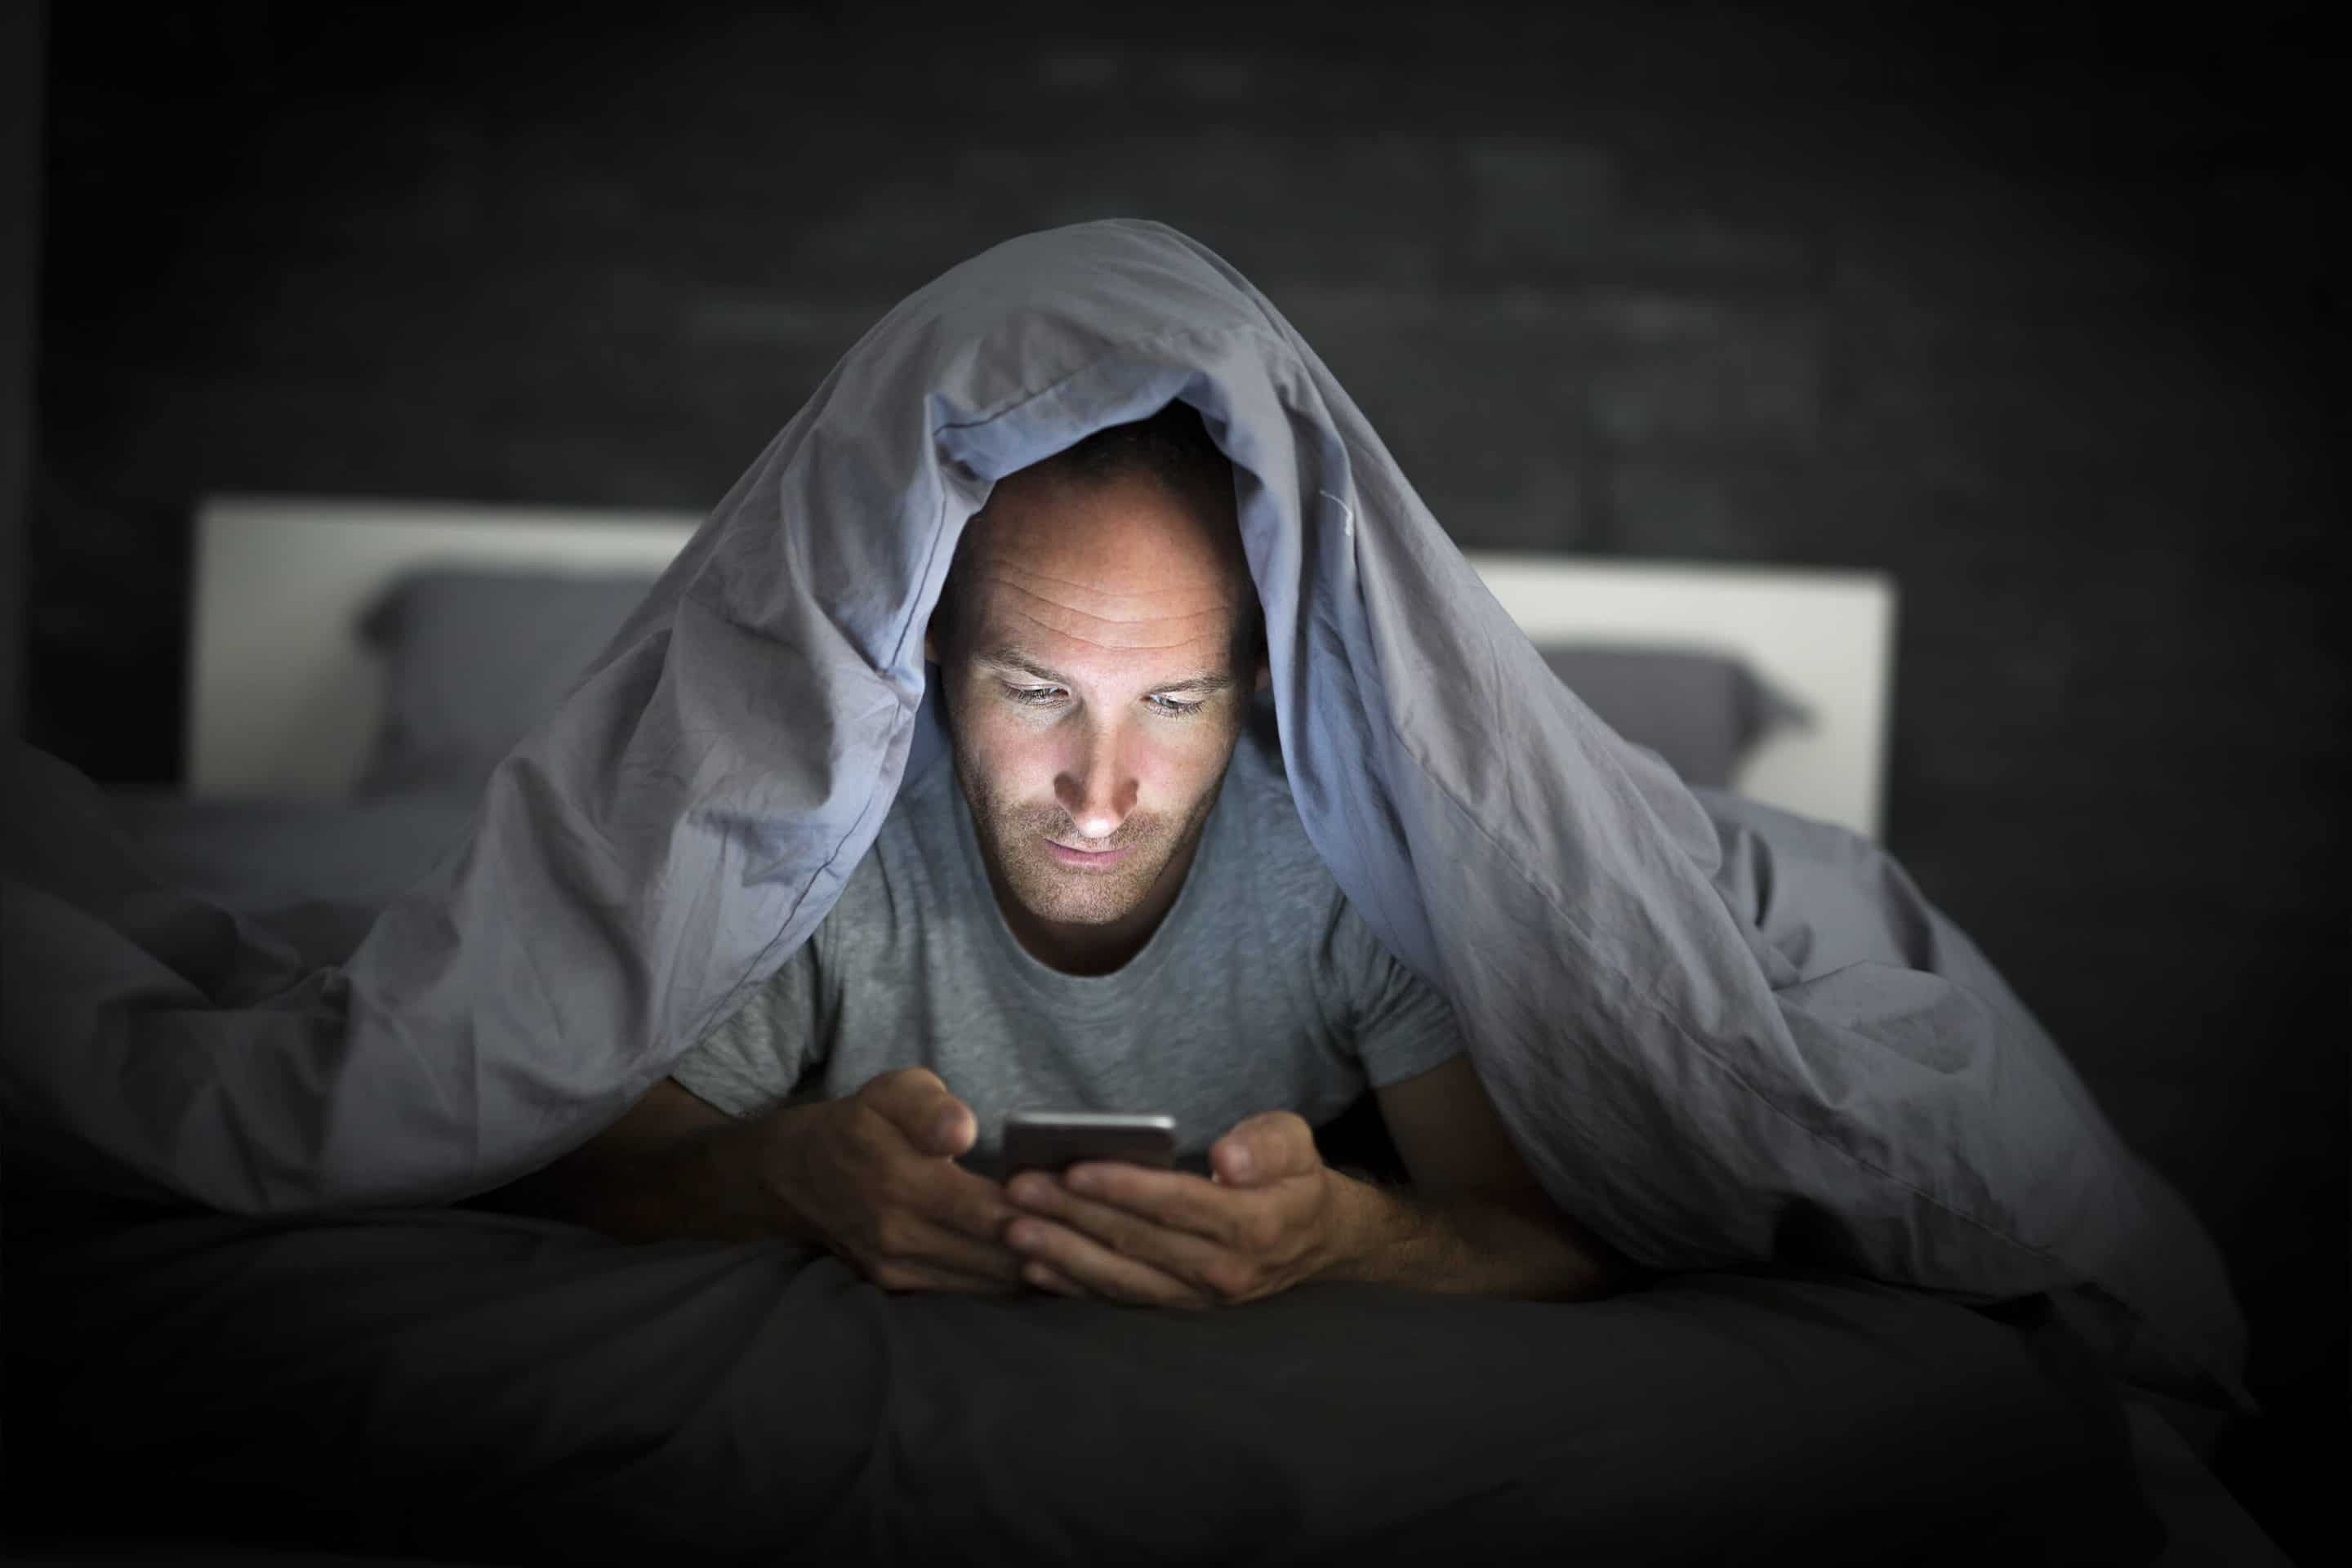 Viewing devices while in bed at night impacts the quality of your sleep and in turn reduces how productive you can be during the day.